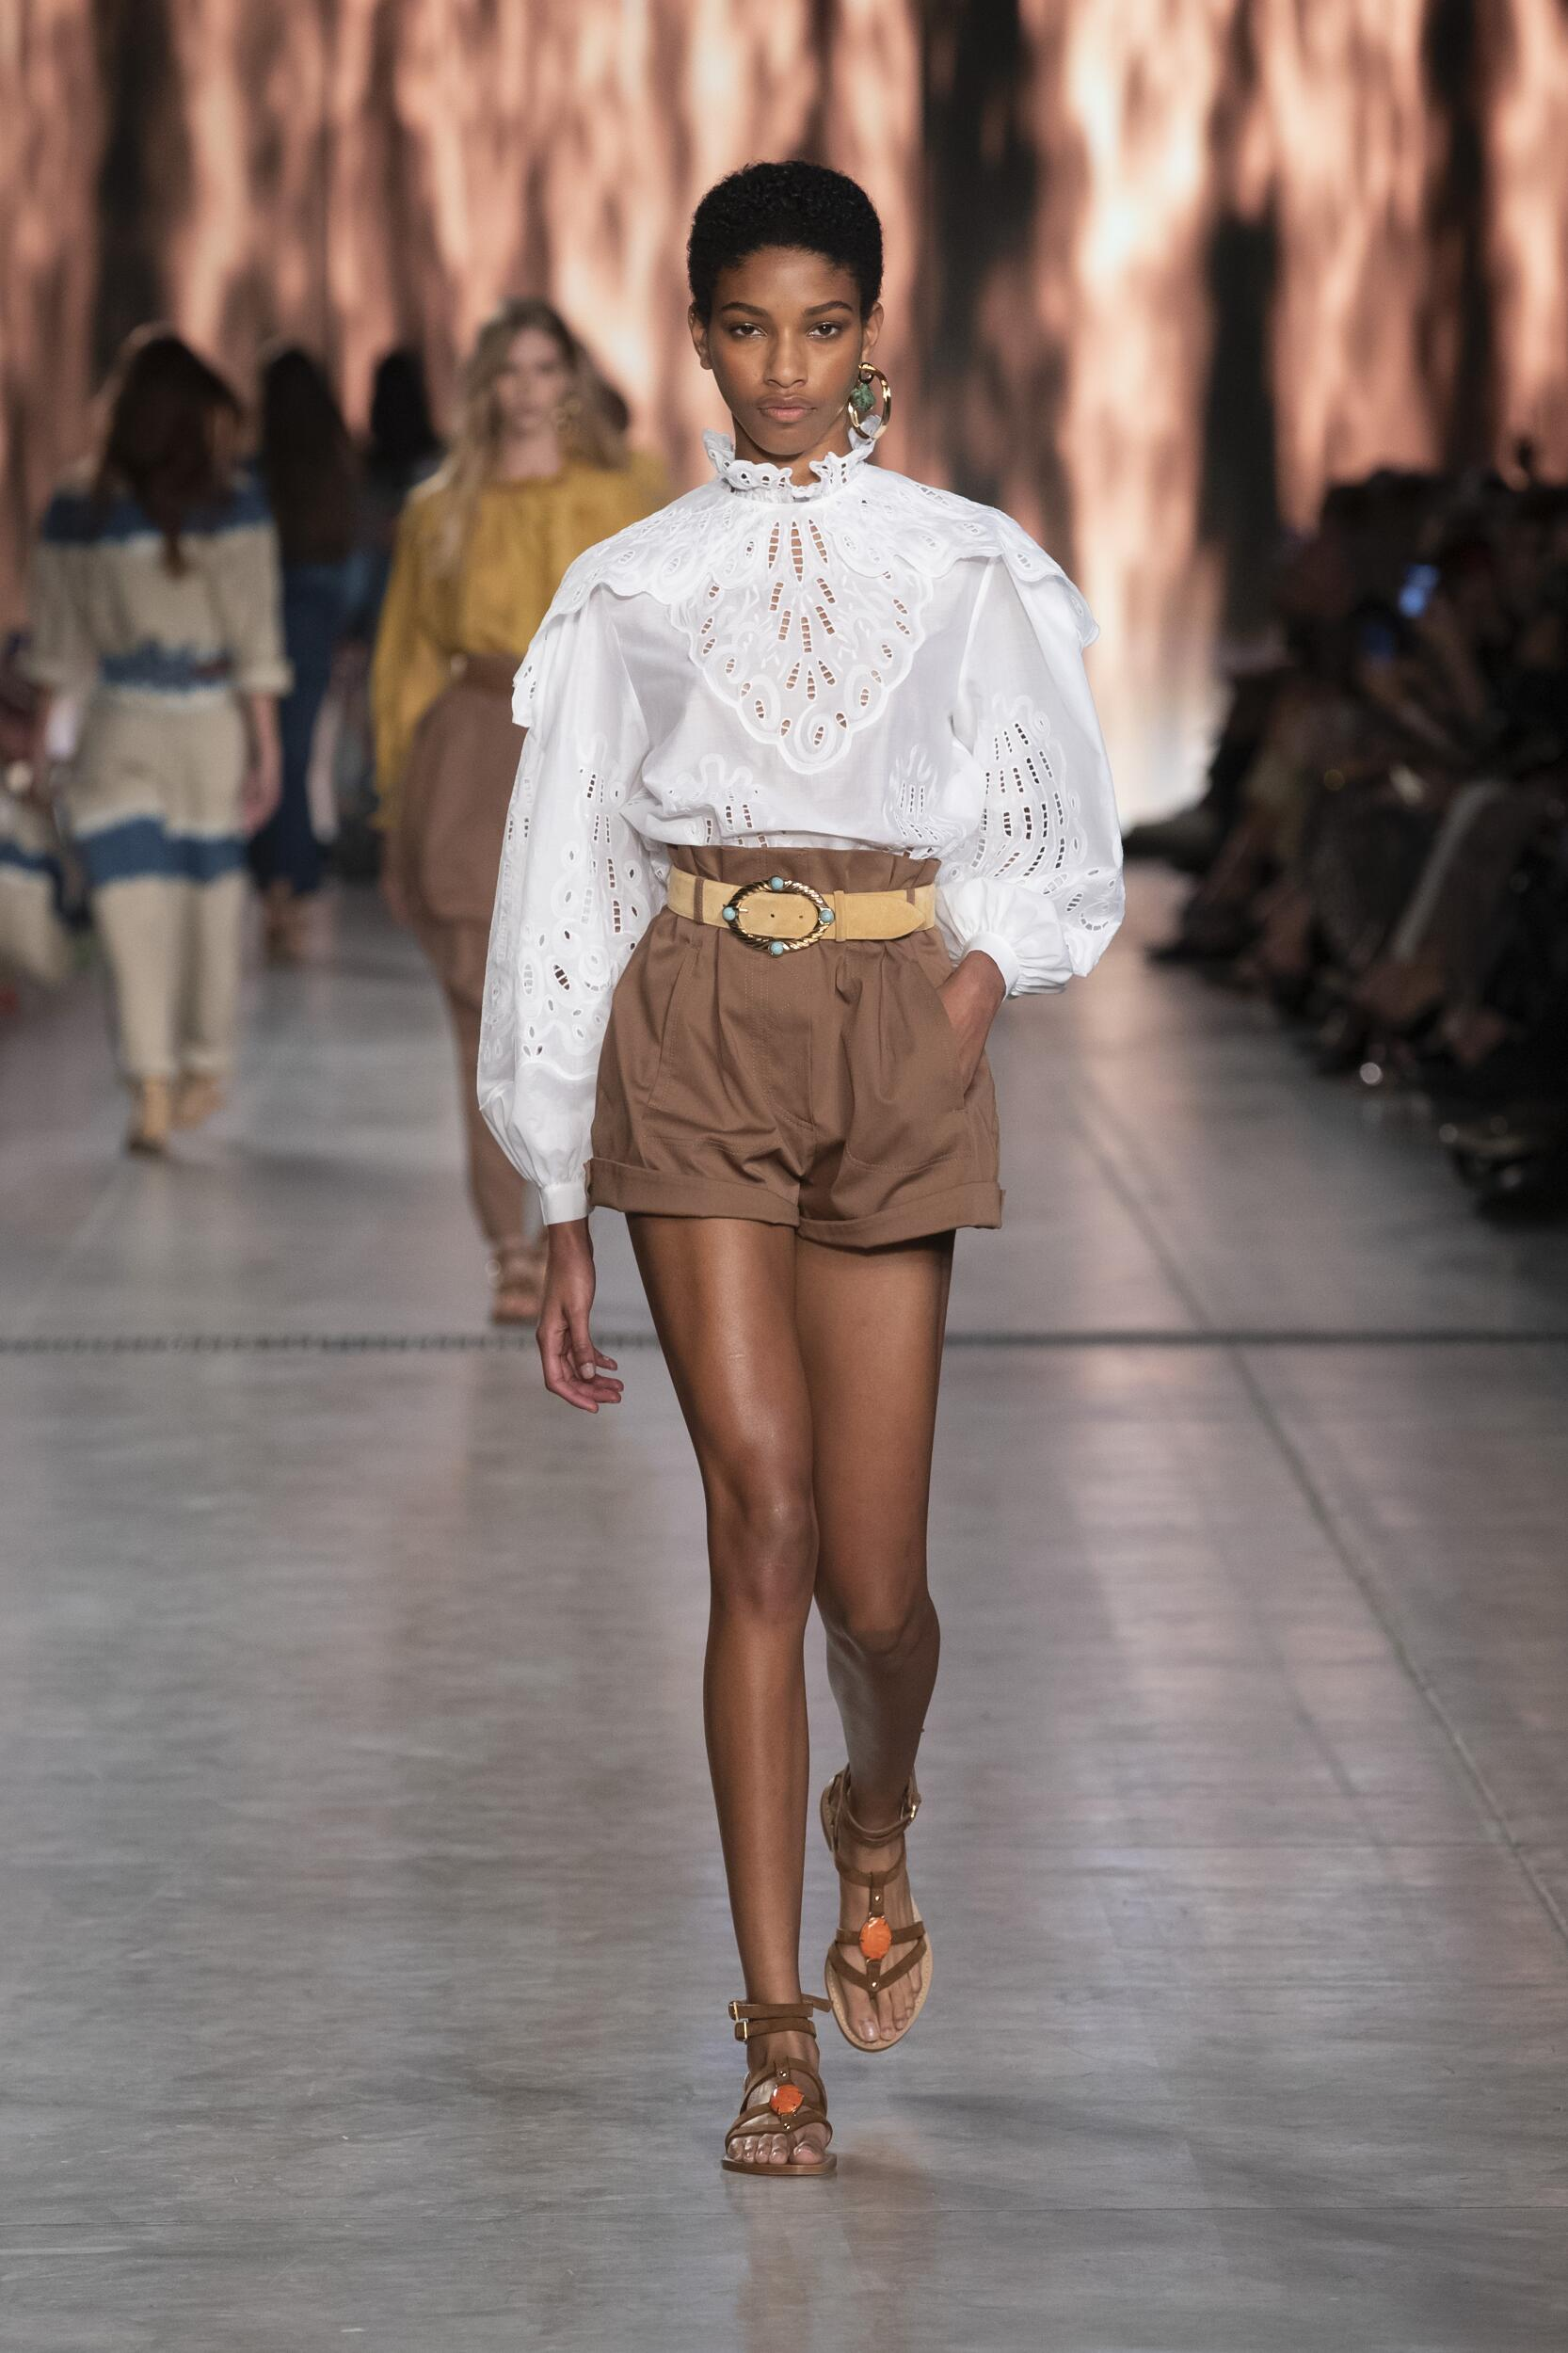 2020 Catwalk Alberta Ferretti Summer Woman Collection